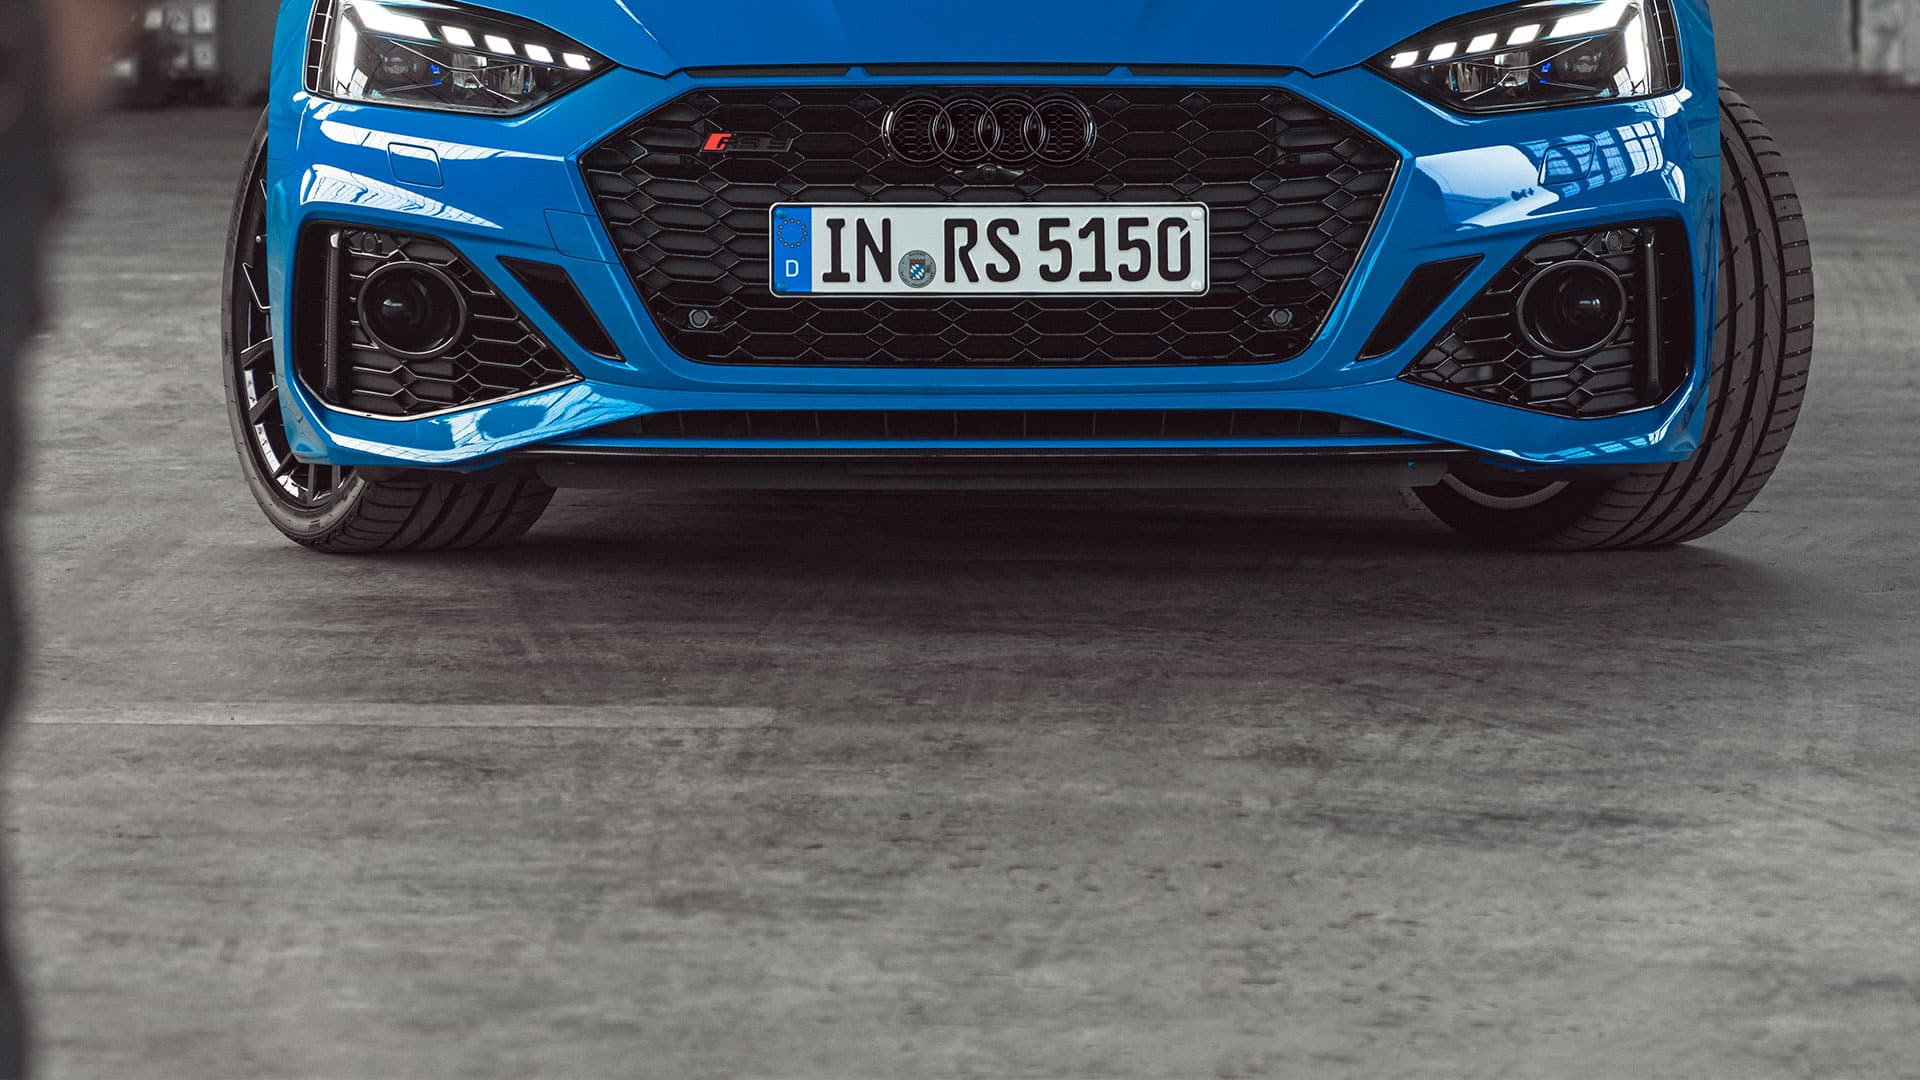 Vista frontale dell'Audi RS 5 Coupé